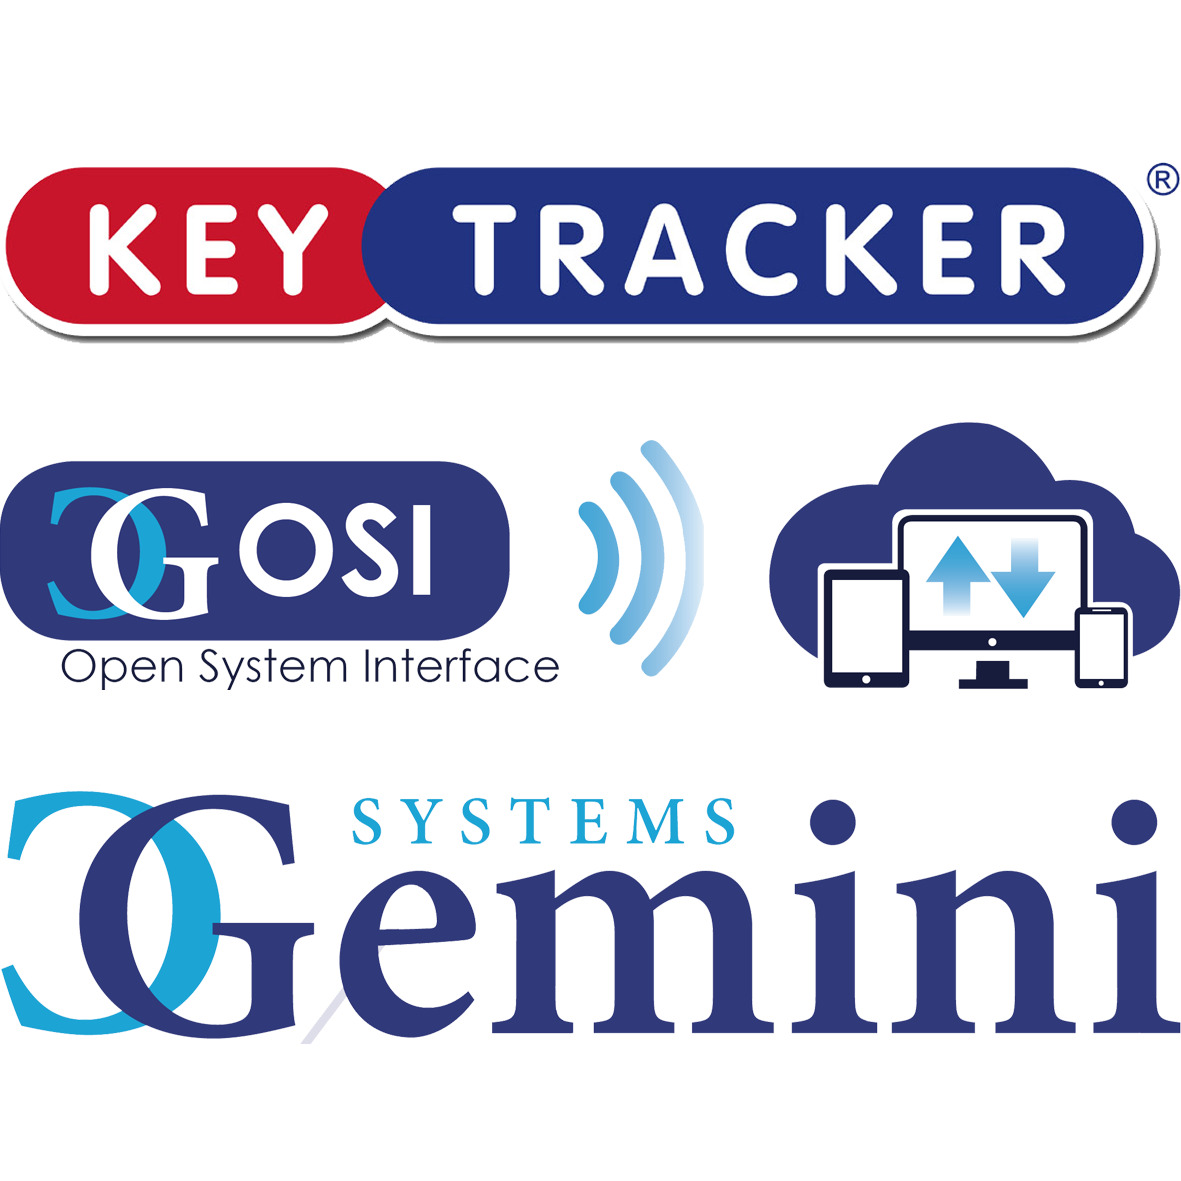 Gemini Systems & KeyTracker offer 2-way integration to their dealers